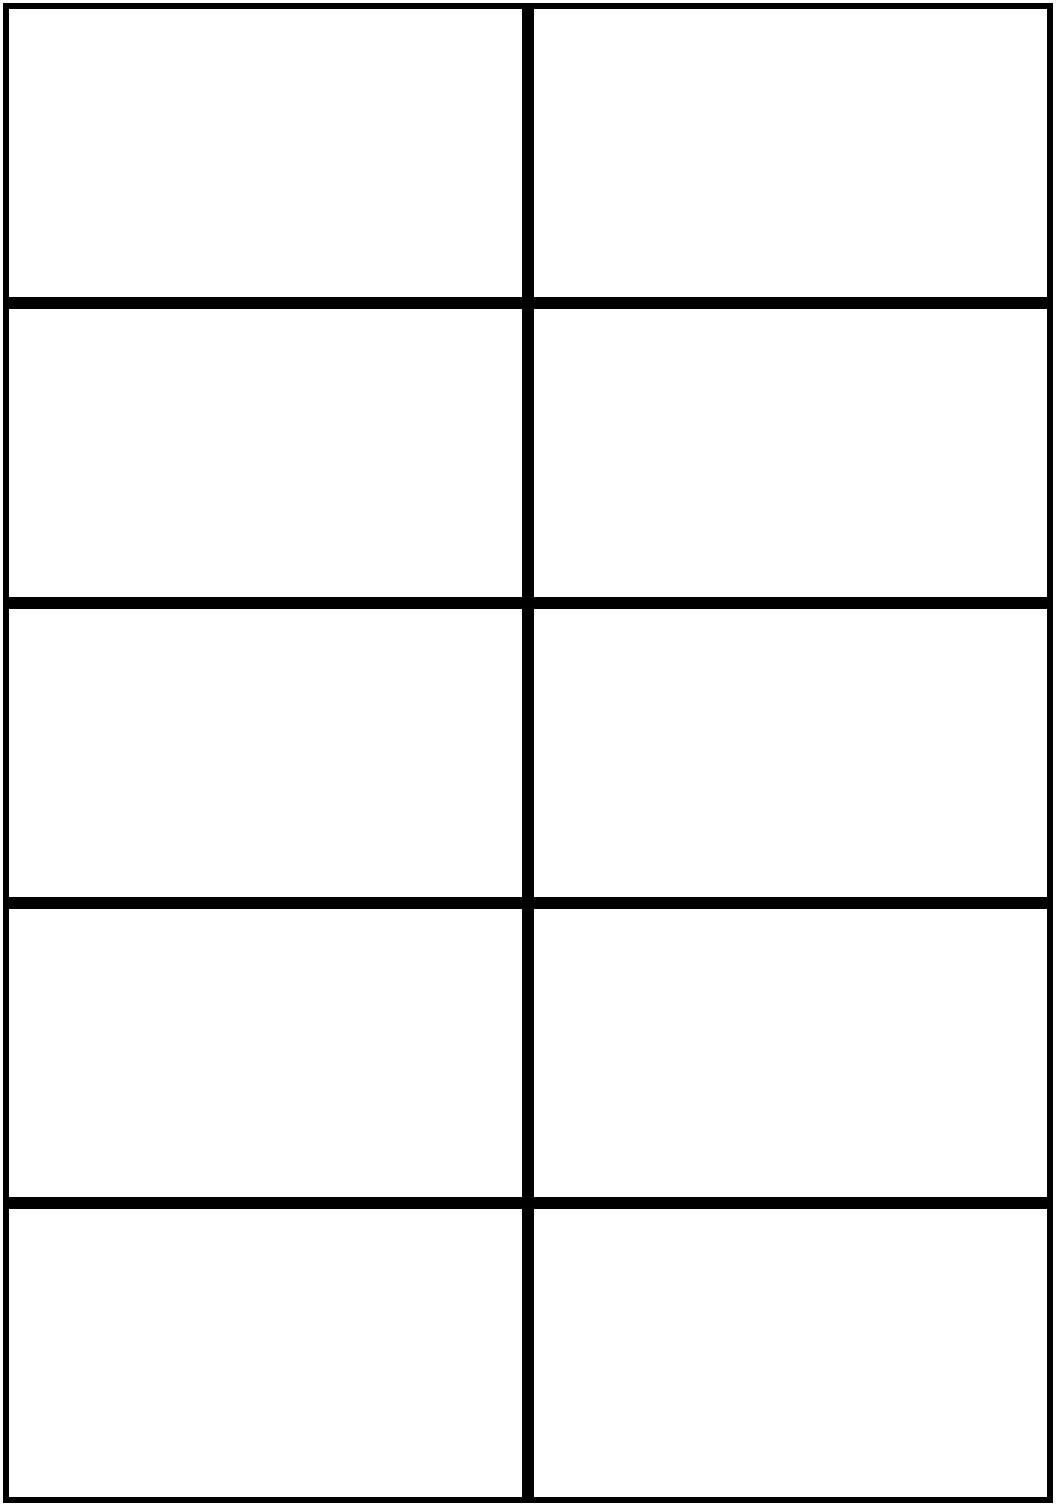 Image Result For Flashcards Template Word   Worksheets   Free - Free Online Business Card Templates Printable